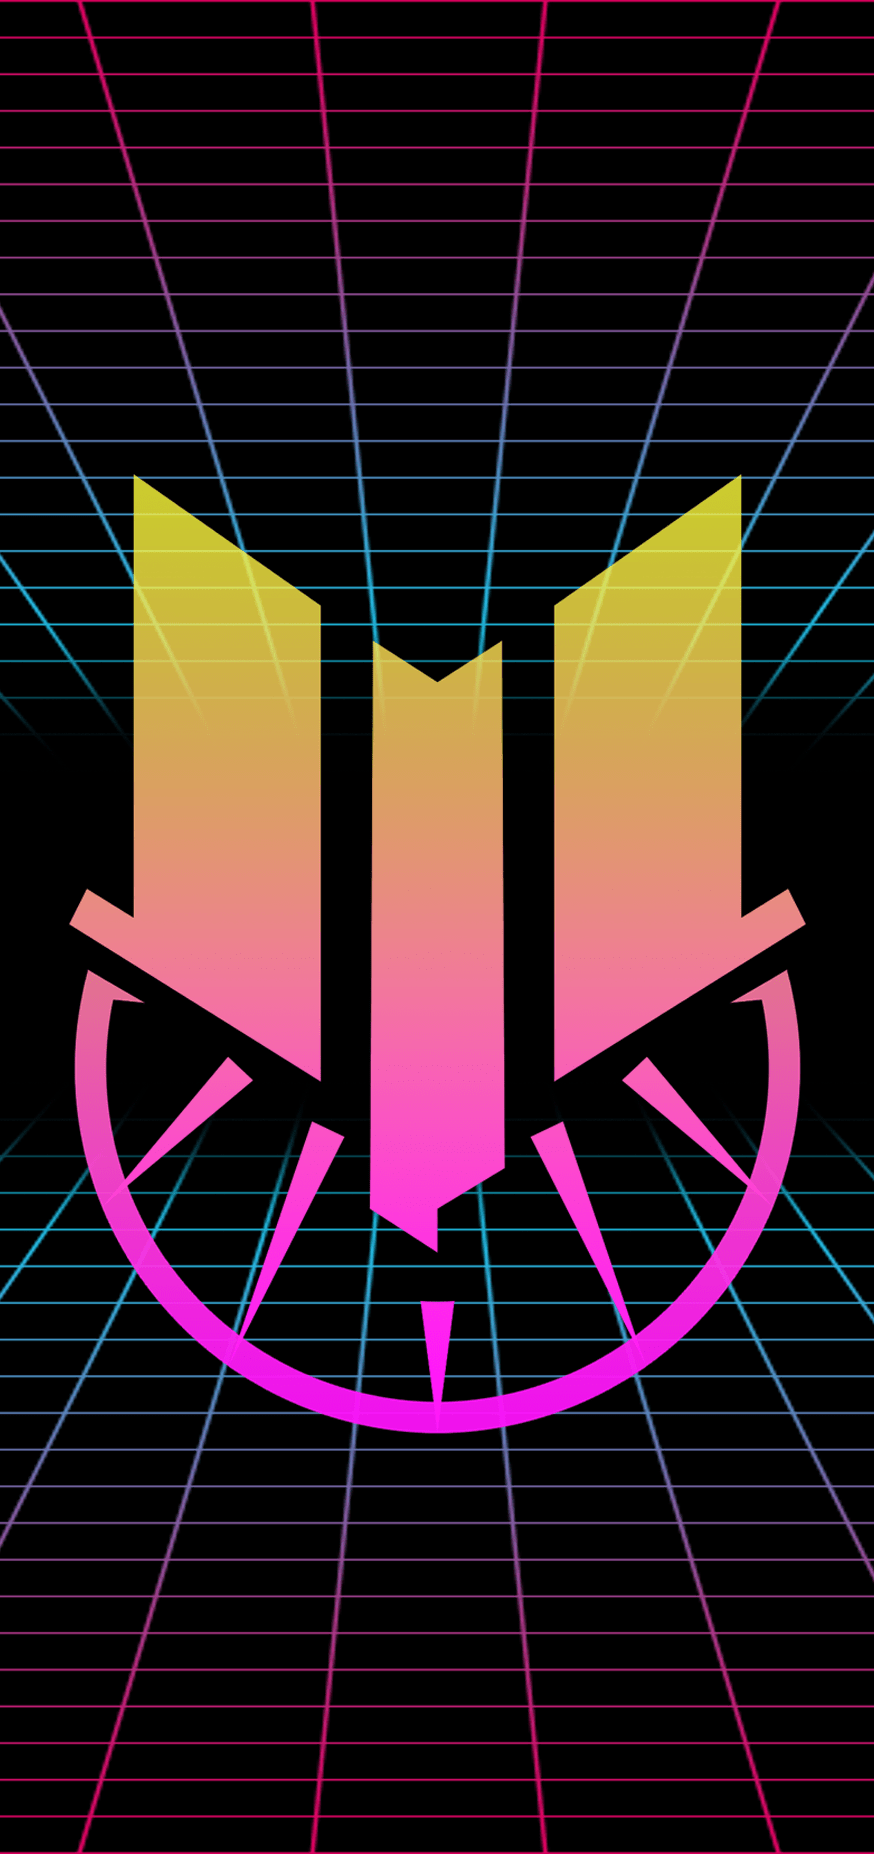 Made A Phone Wallpaper That I L Be Using As A Custom Phone Case Thought You Guys Might Like It Warframe